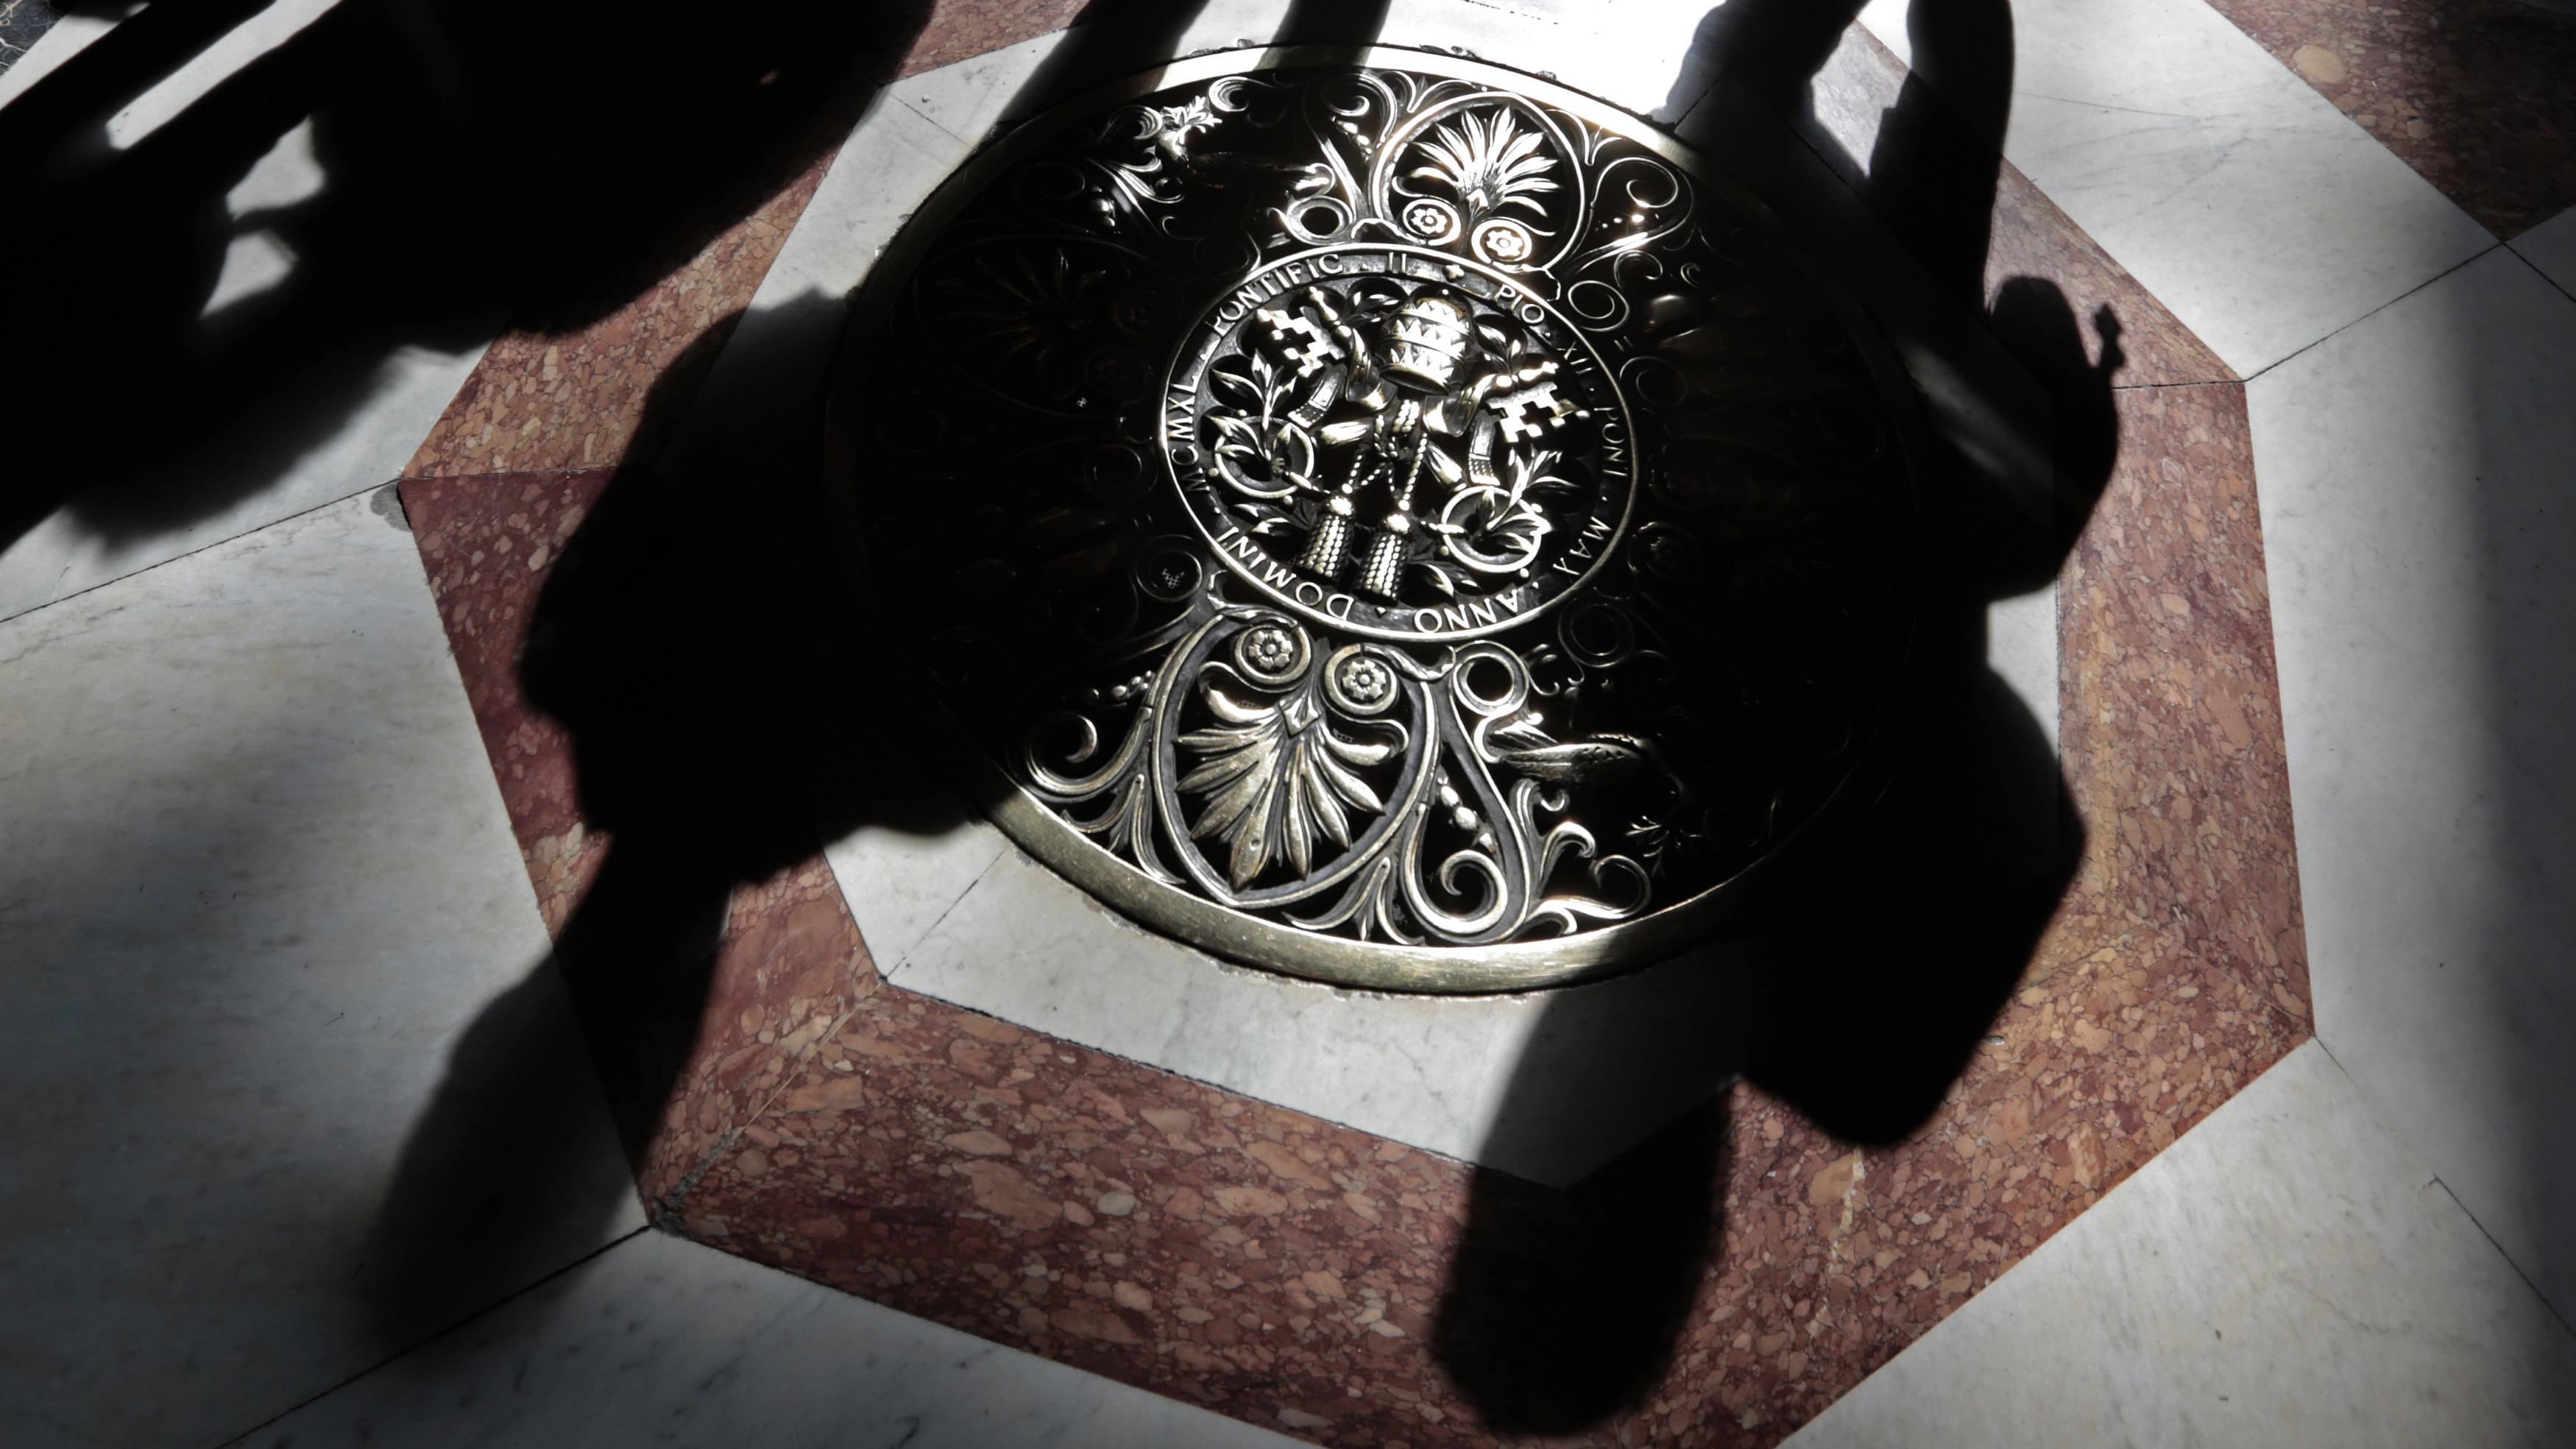 Shadows of tourists are cast across a papal crest on the floor